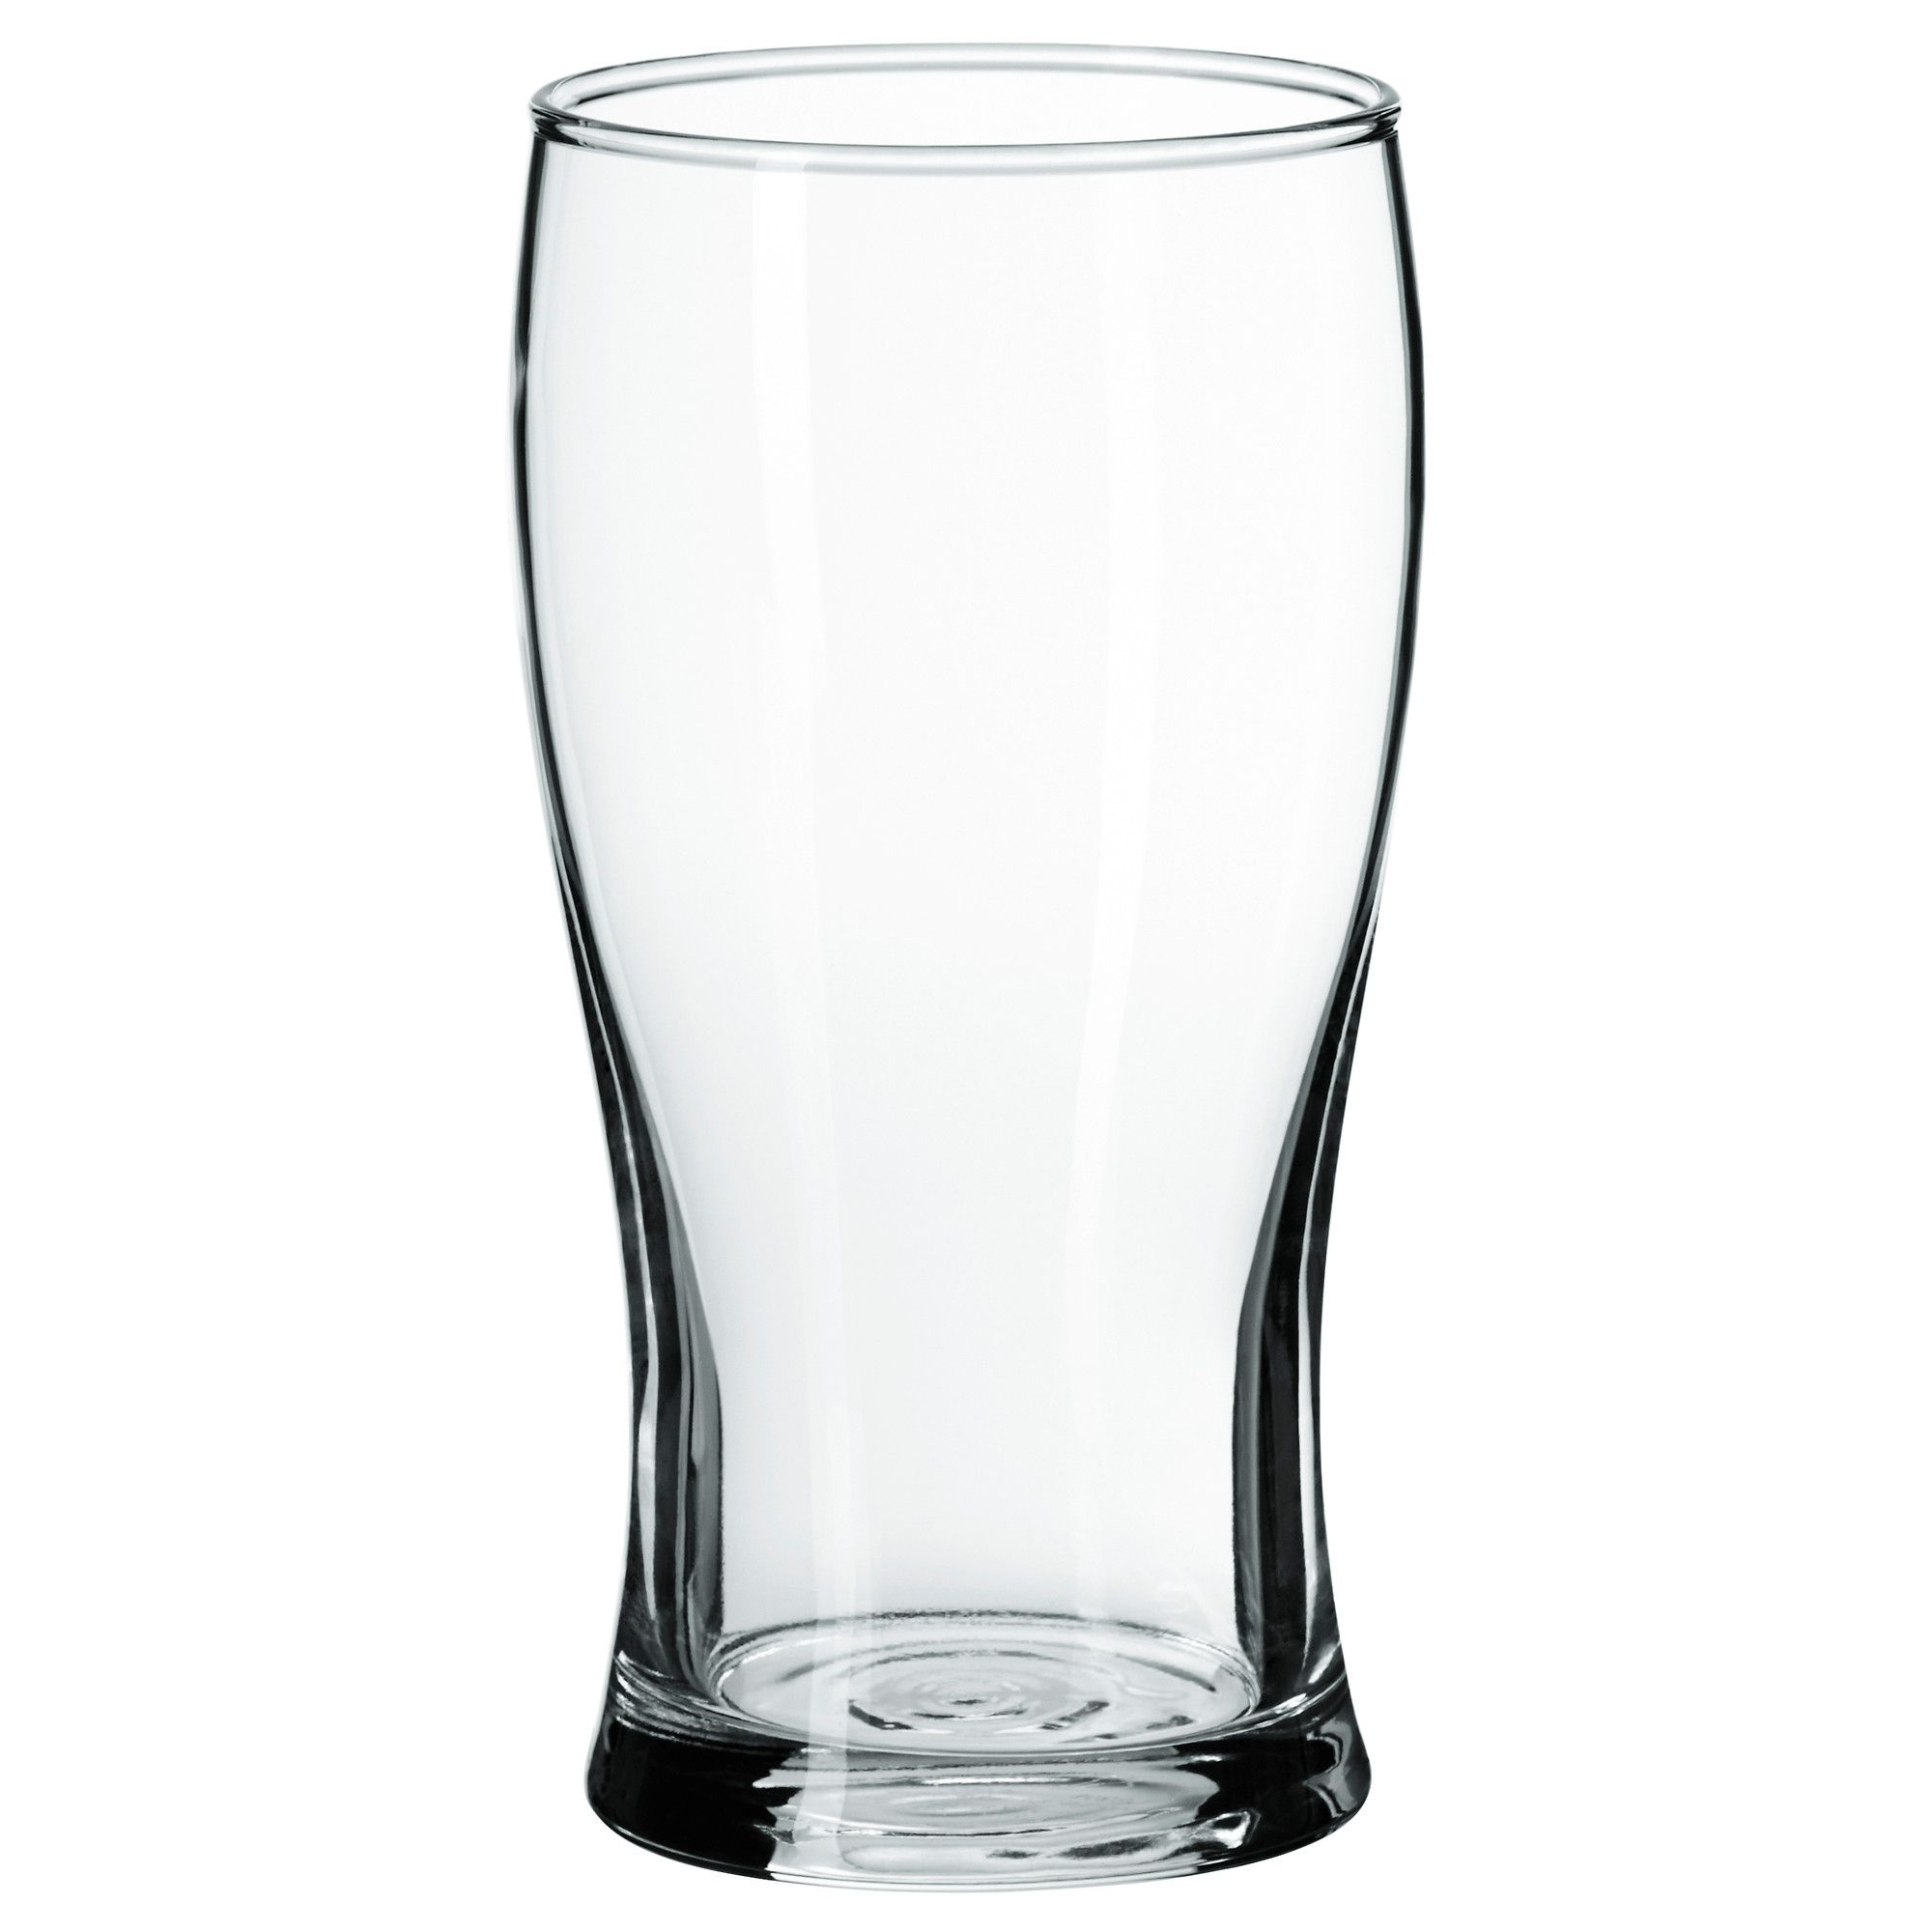 lodr t beer glass clear glass apartment pinterest tablewares kitchenware and cookware. Black Bedroom Furniture Sets. Home Design Ideas